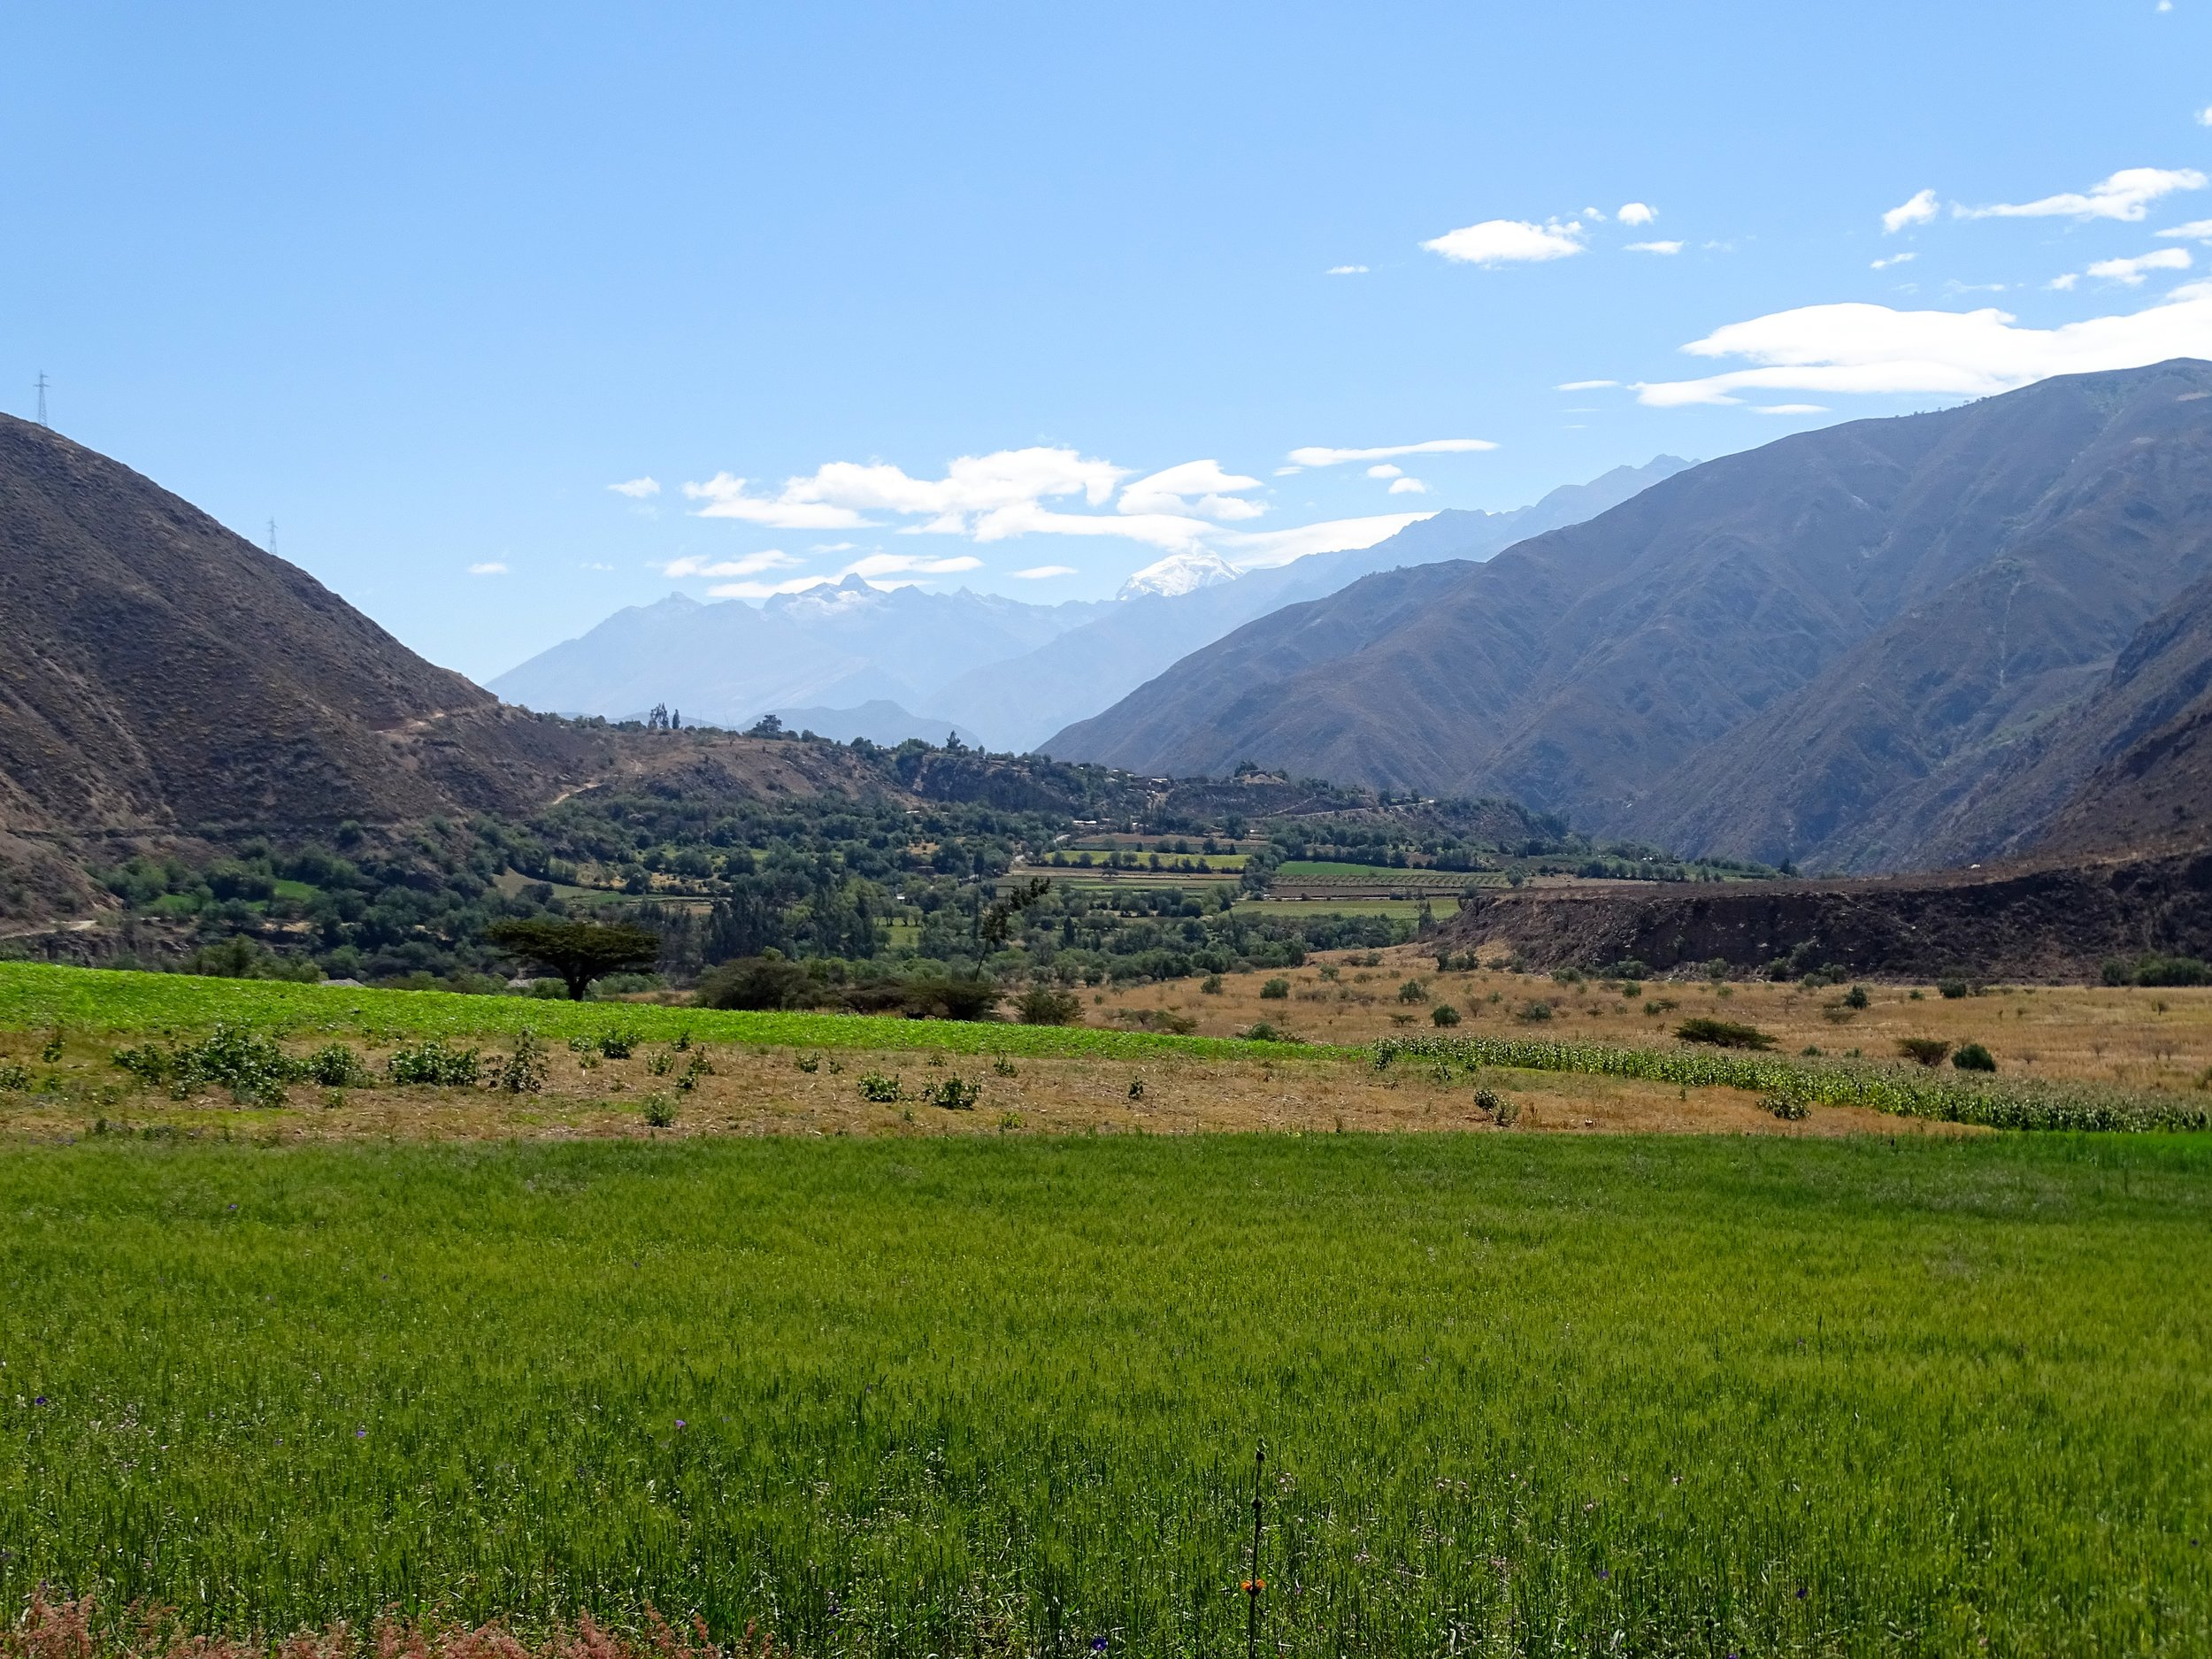 Below Yungay, the Rio Santa forms chains of small fertile valleys as it flows northward.